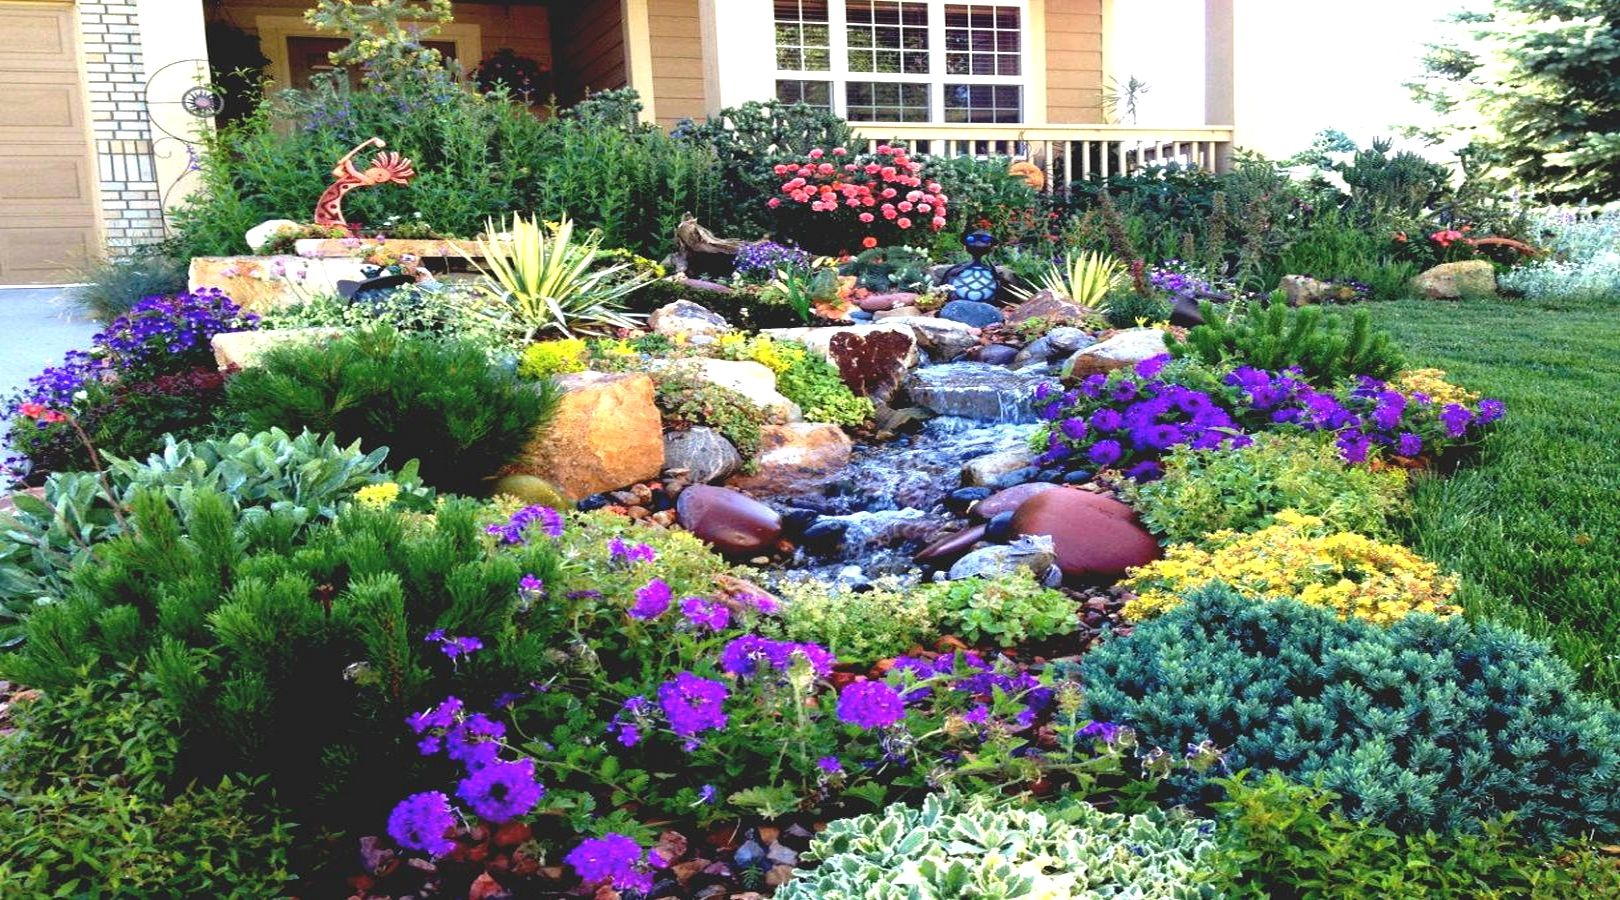 Colorado Front Yard Landscaping Ideas | Flower Garden Designs For Full Sun Flower  Garden Designs For